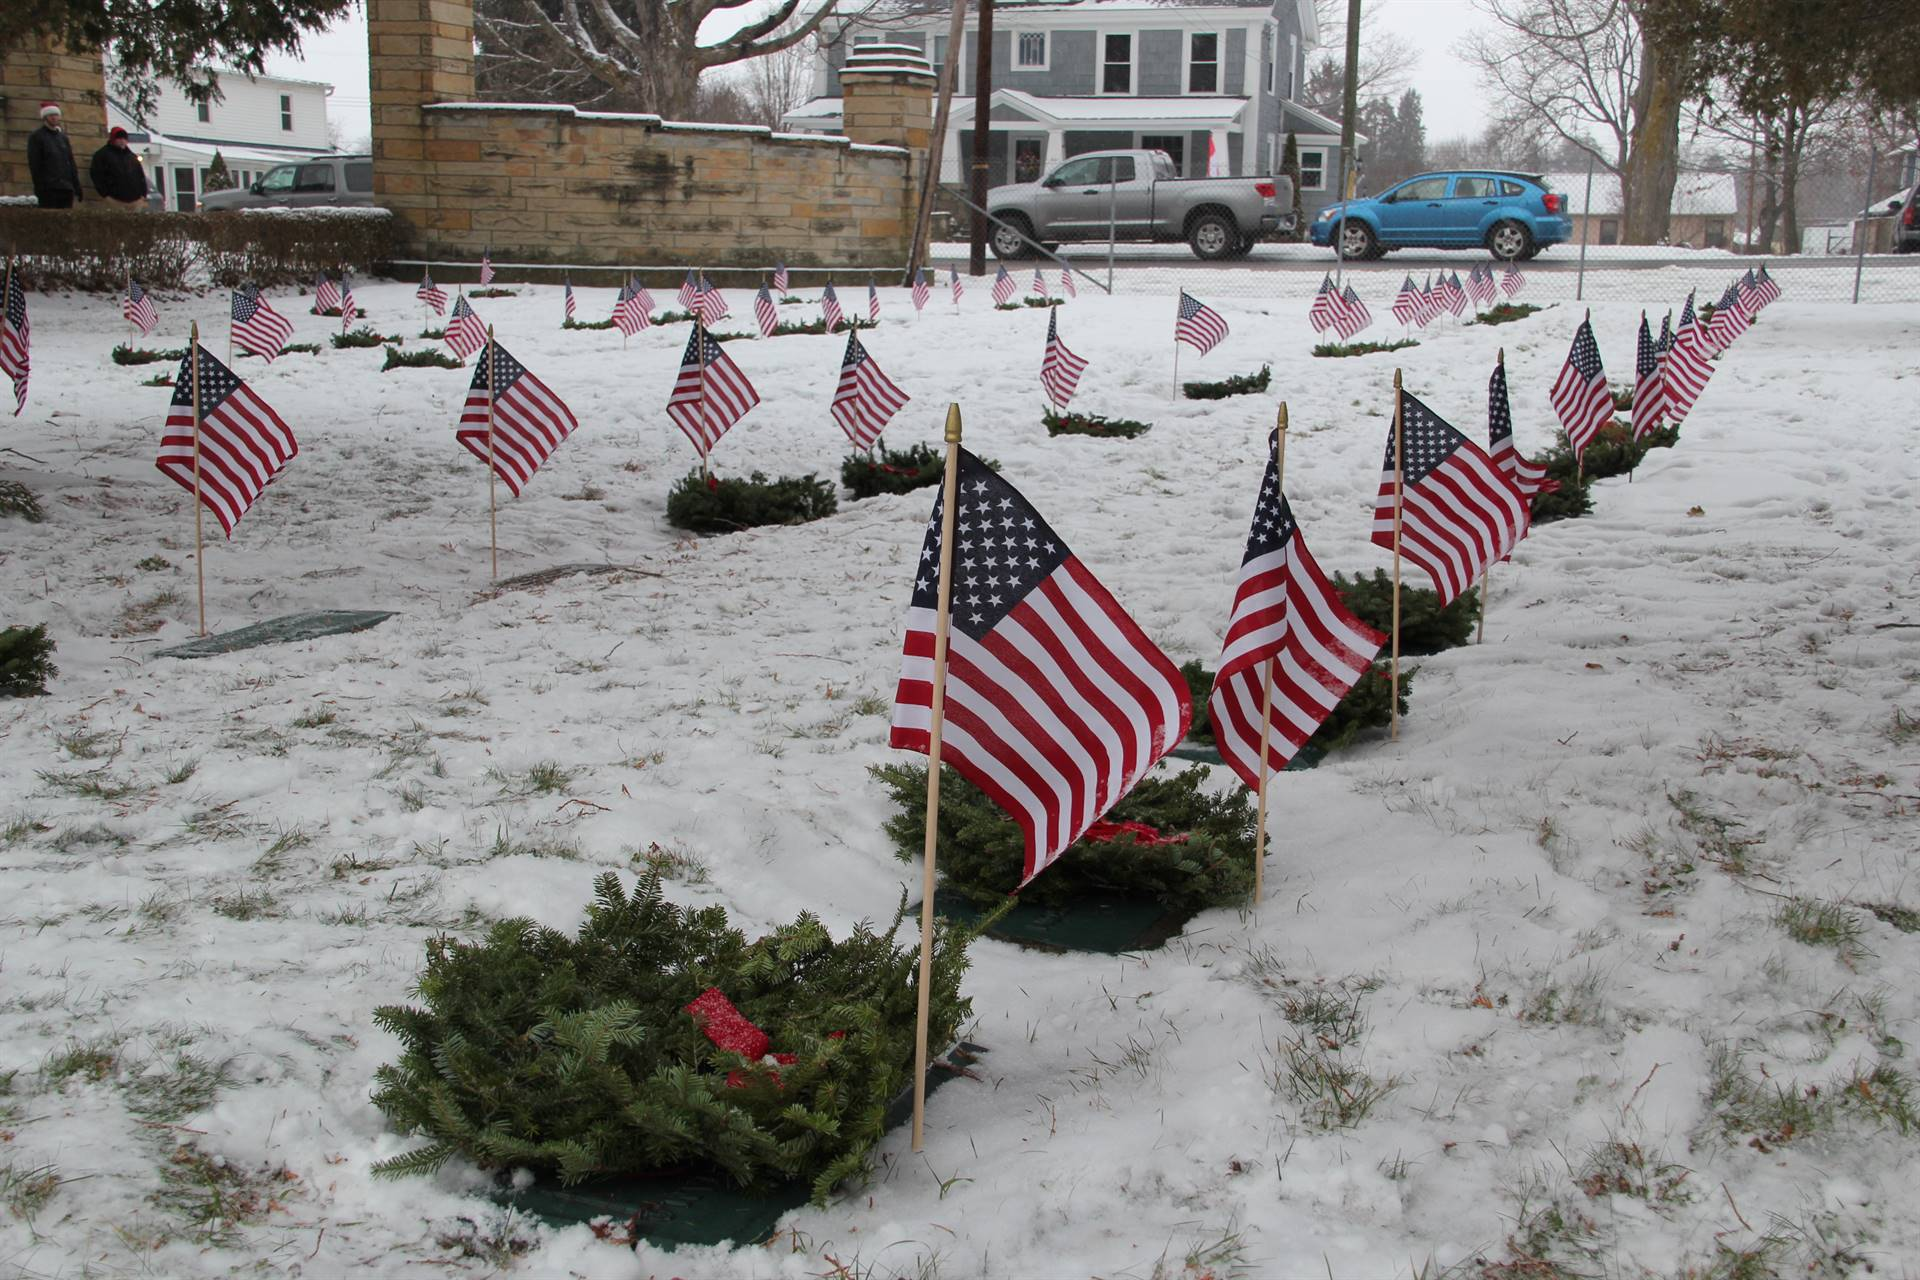 medium shot of line of graves with wreaths and American flags